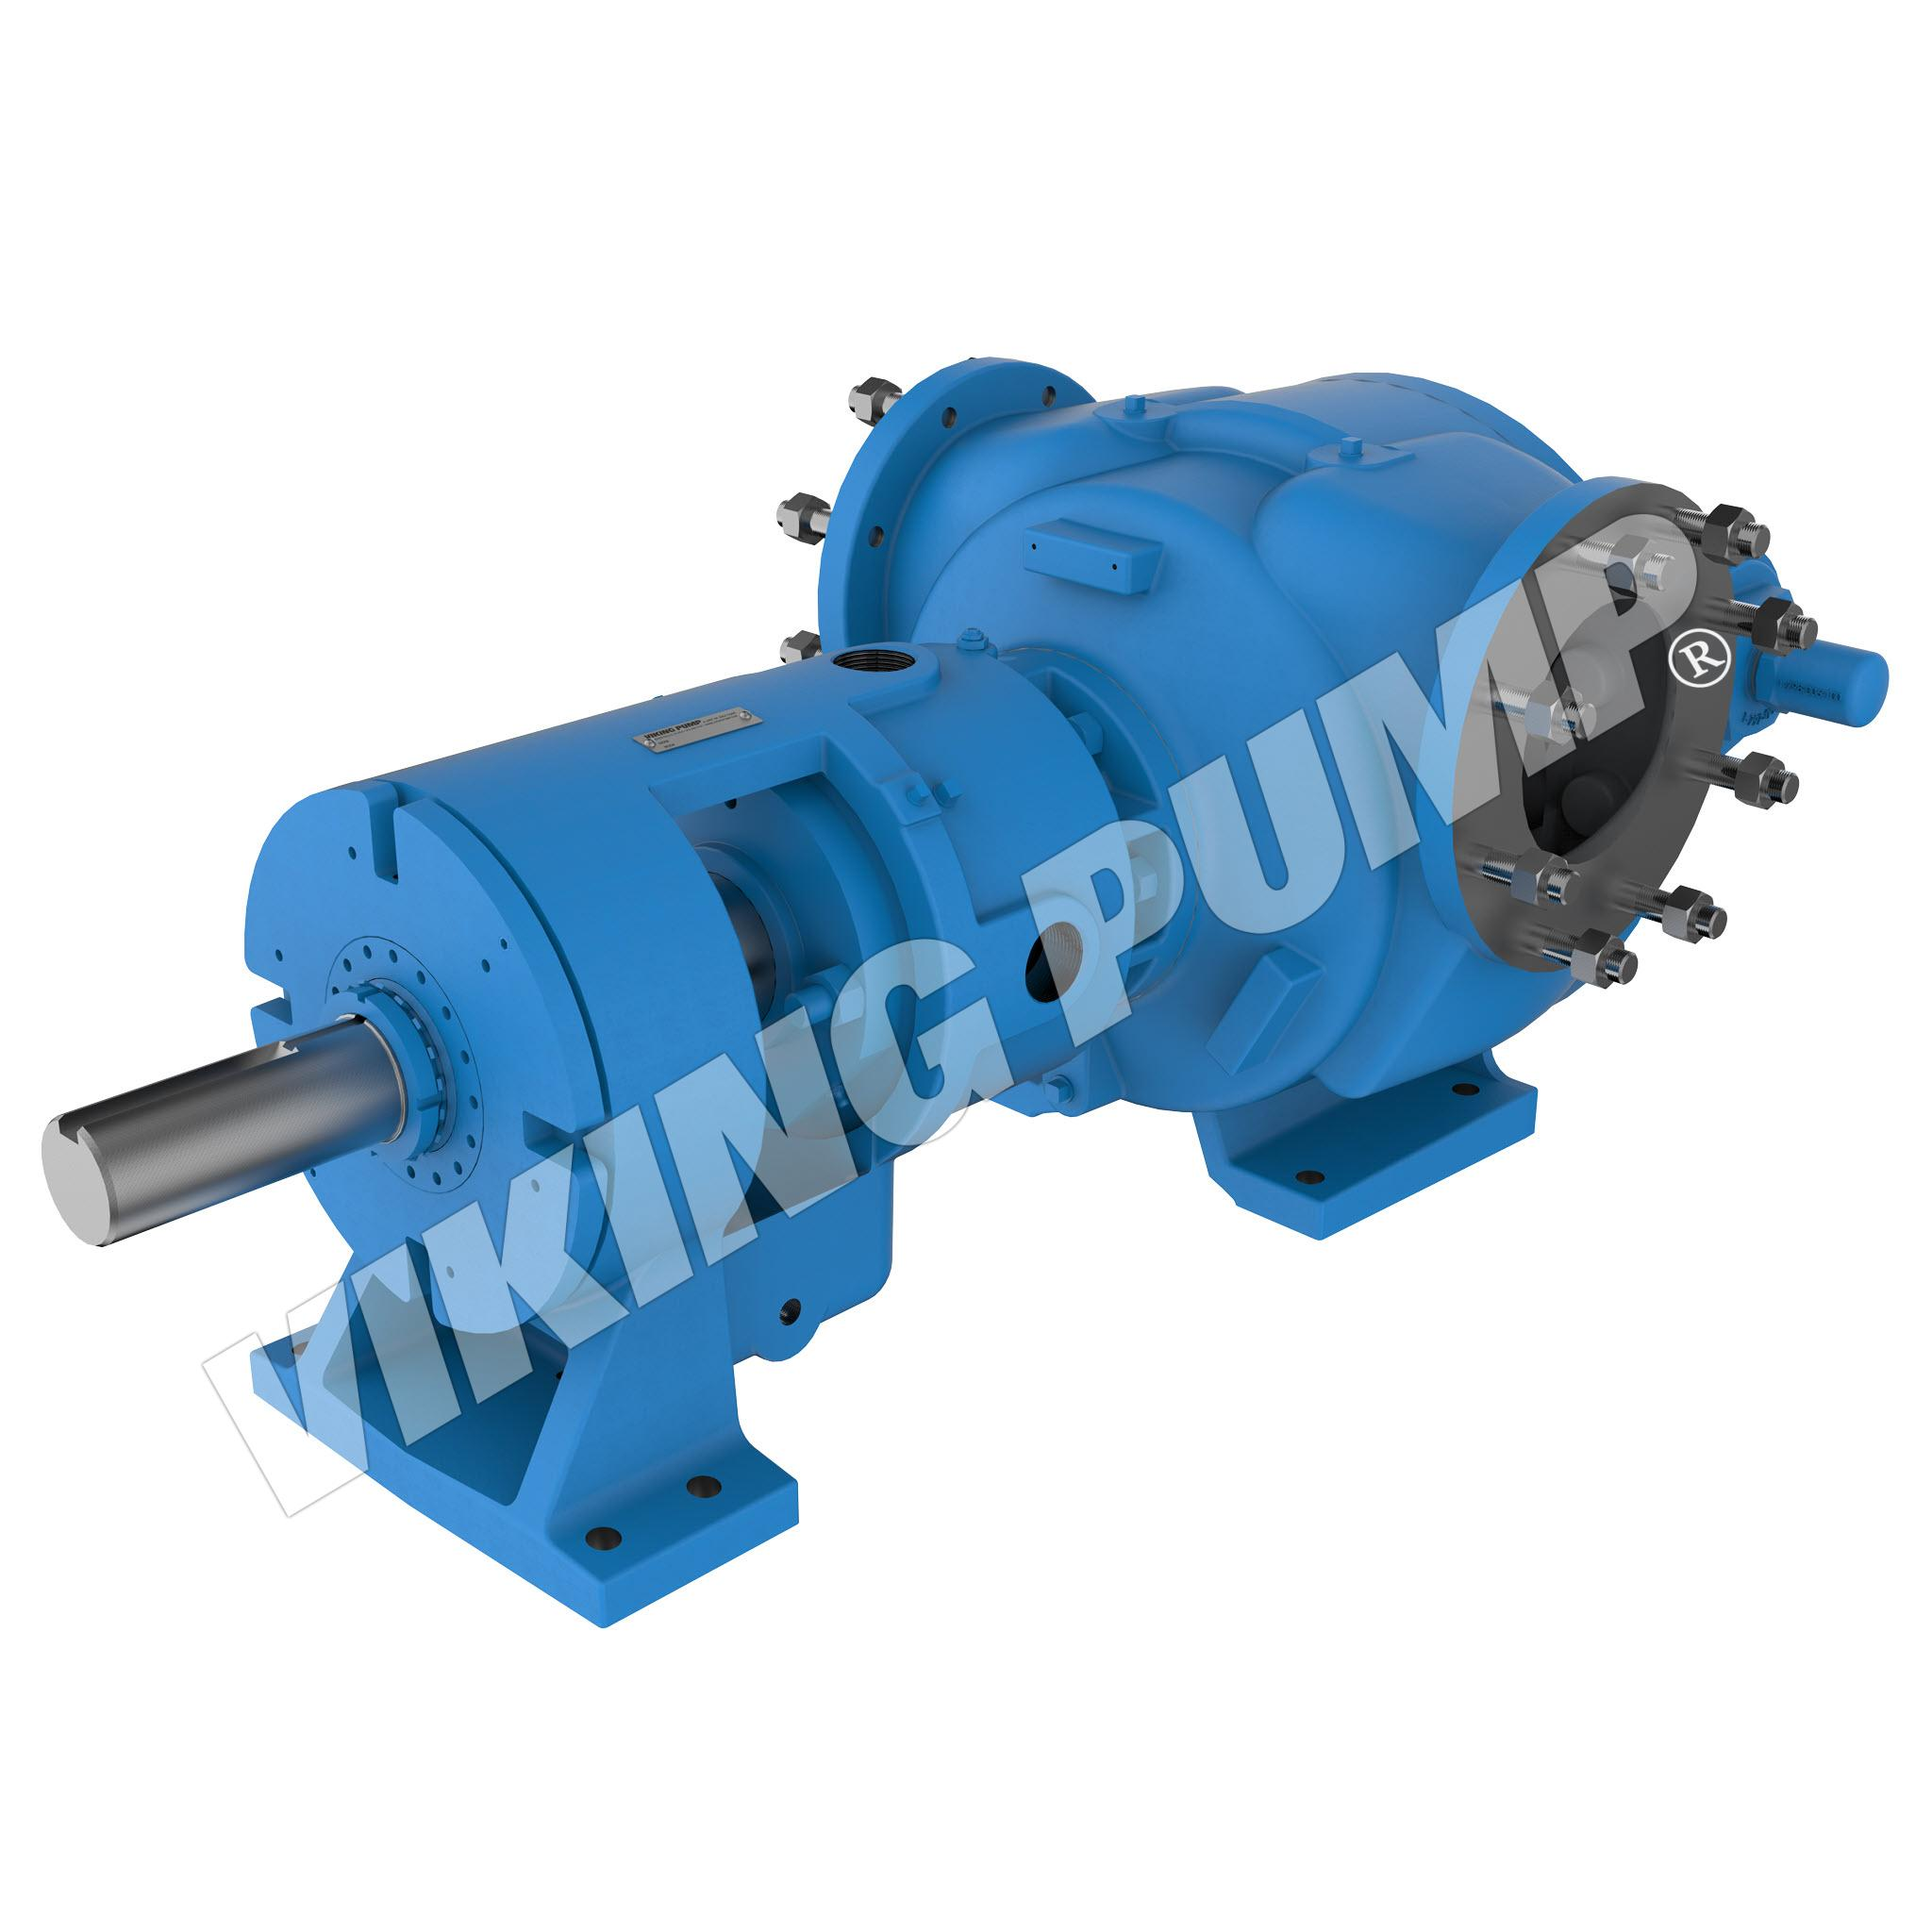 Model N1324A, O-Pro™ Barrier Seal, Relief Valve Pump